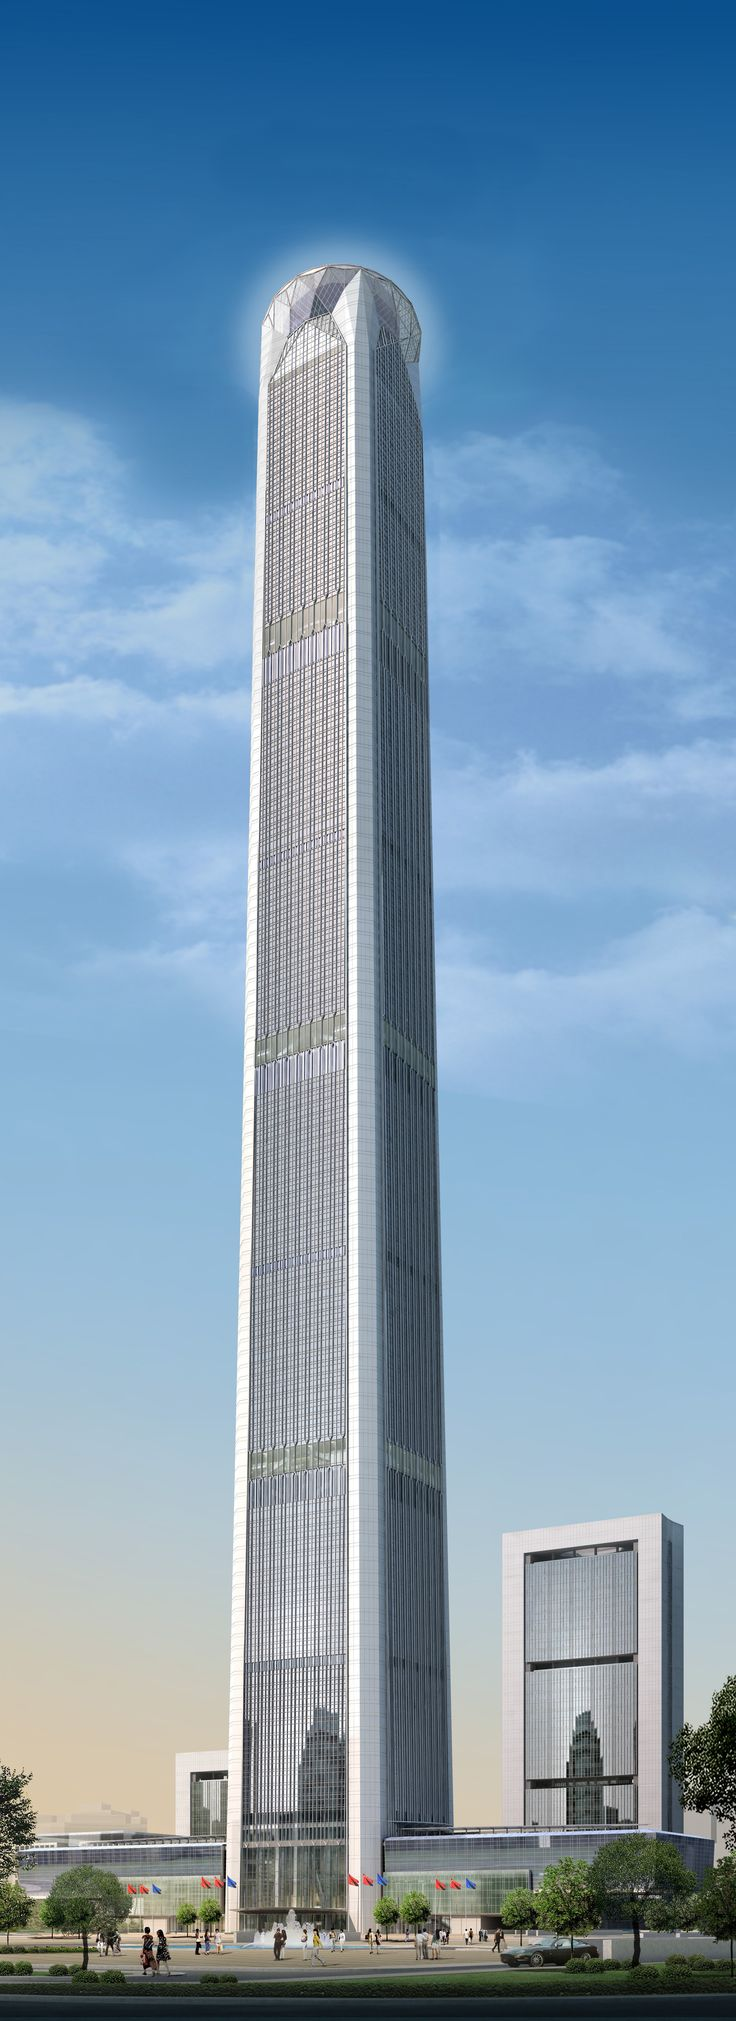 worlds 6 tallest skyscrapers set completion 2016 05